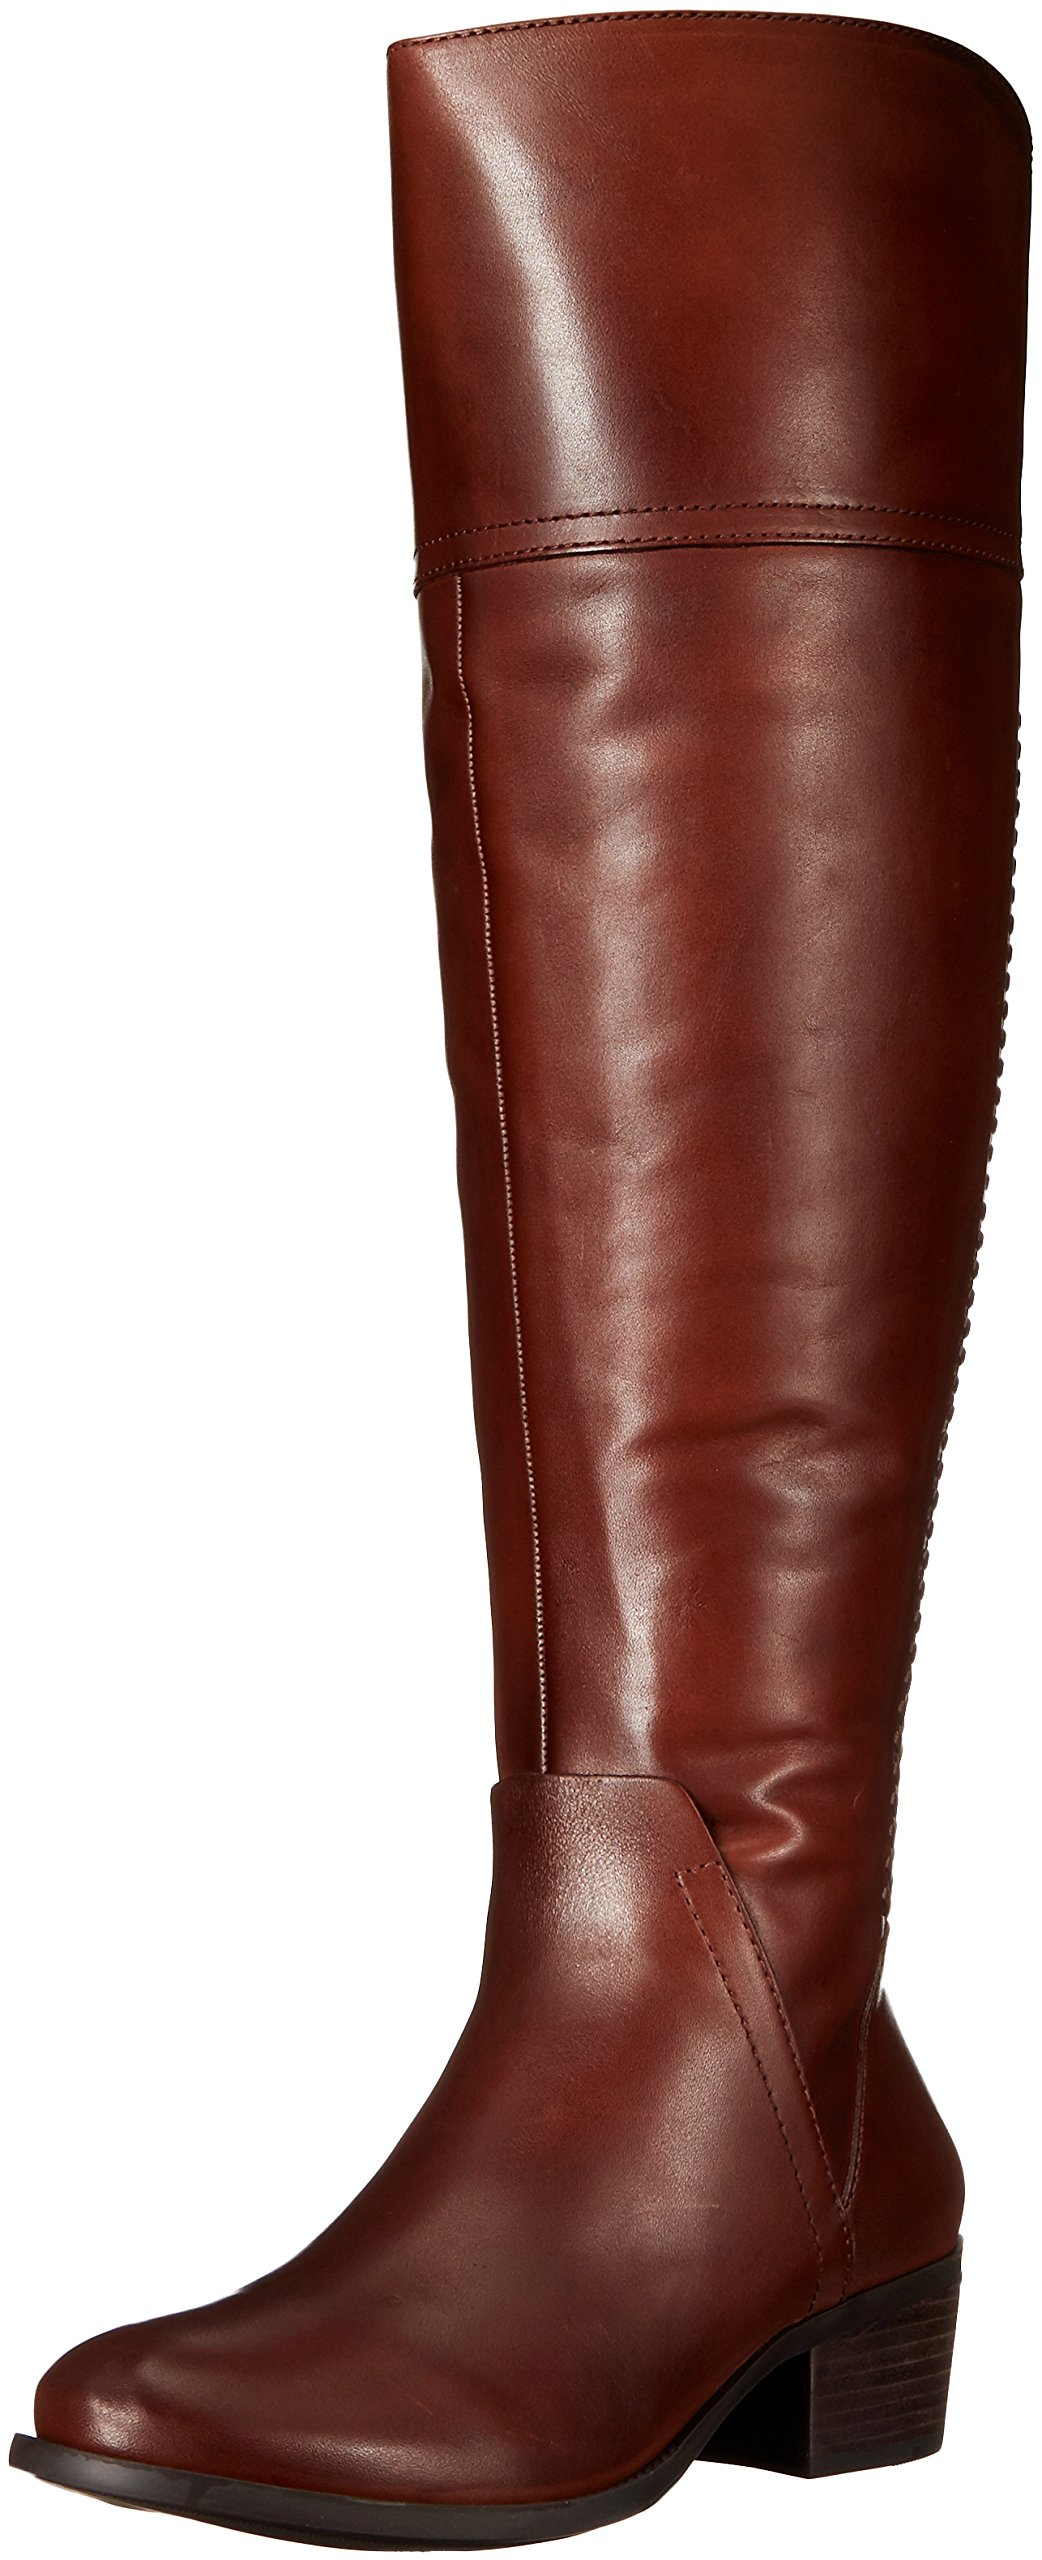 Vince Camuto Women's Bendra Riding Boot, Russet/Wide Calf, 7 M US